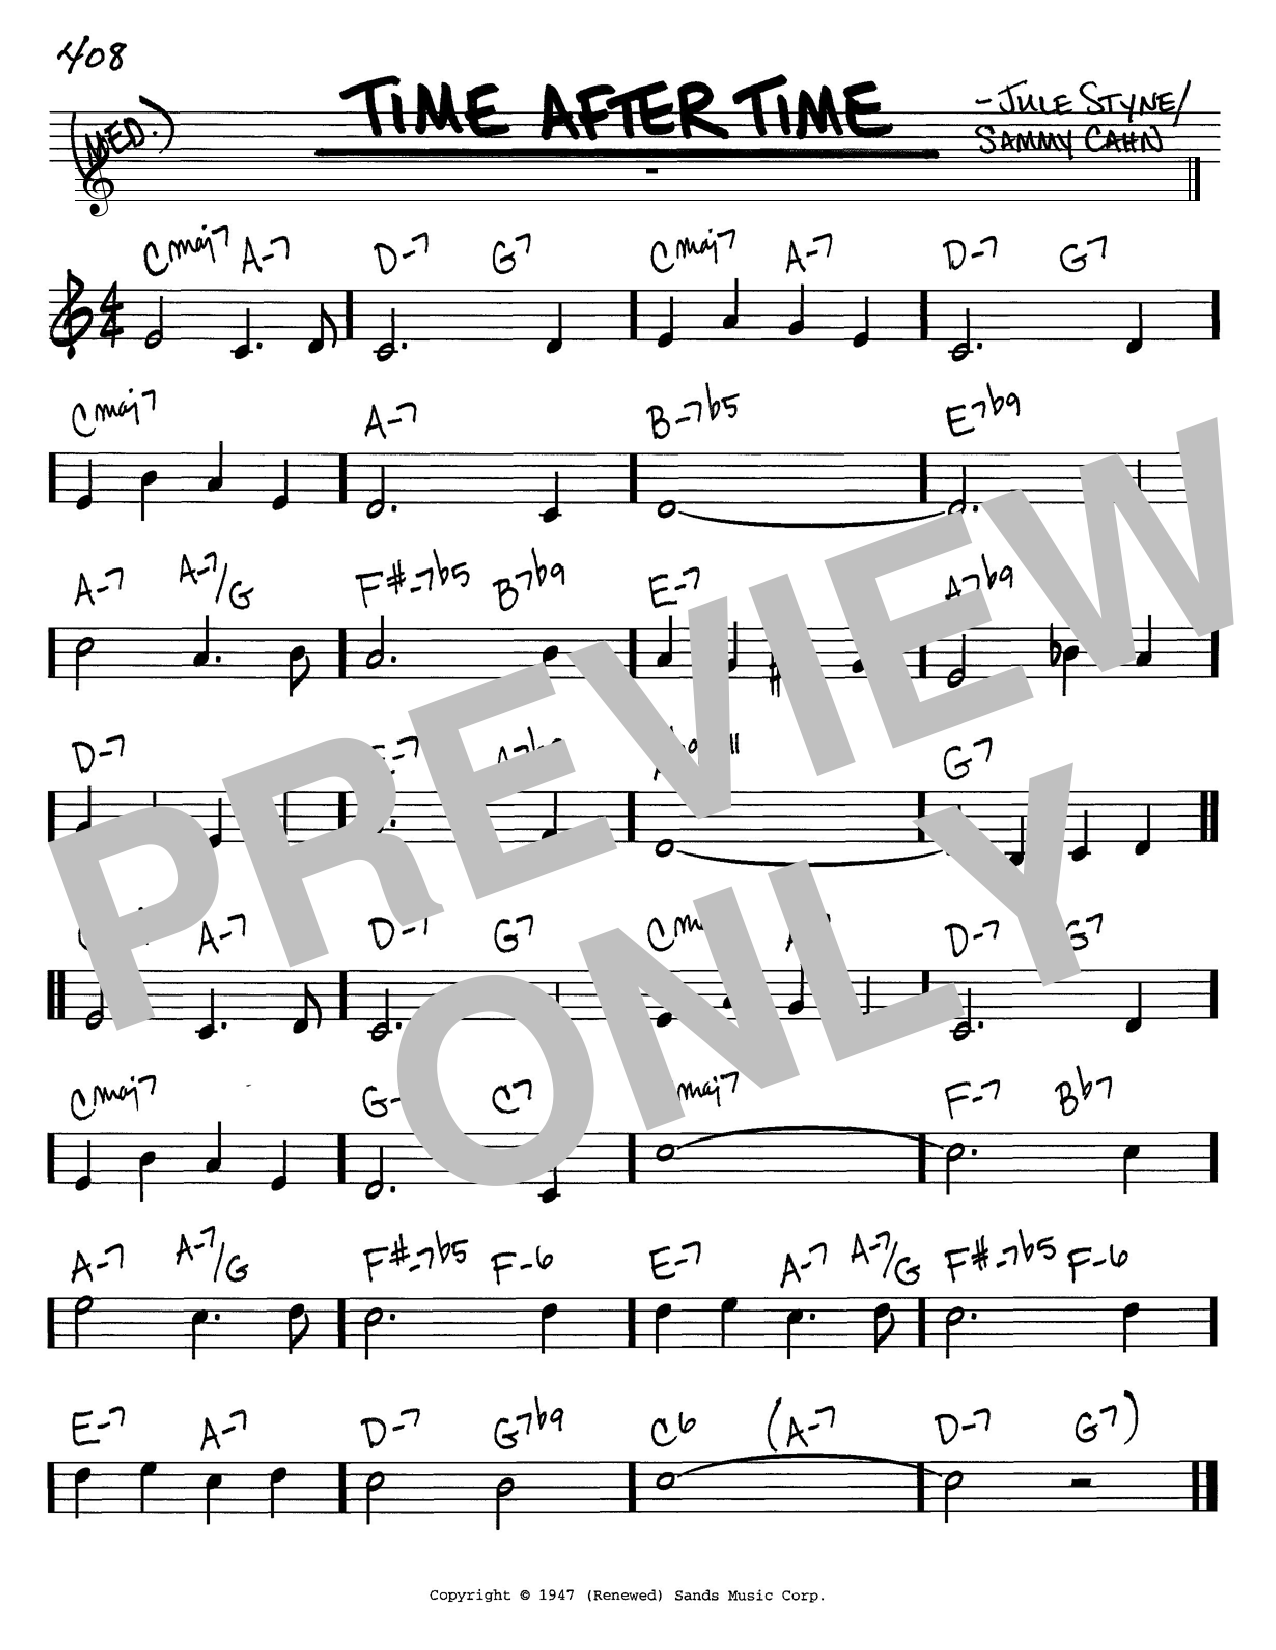 Sammy Cahn Time After Time sheet music notes and chords. Download Printable PDF.